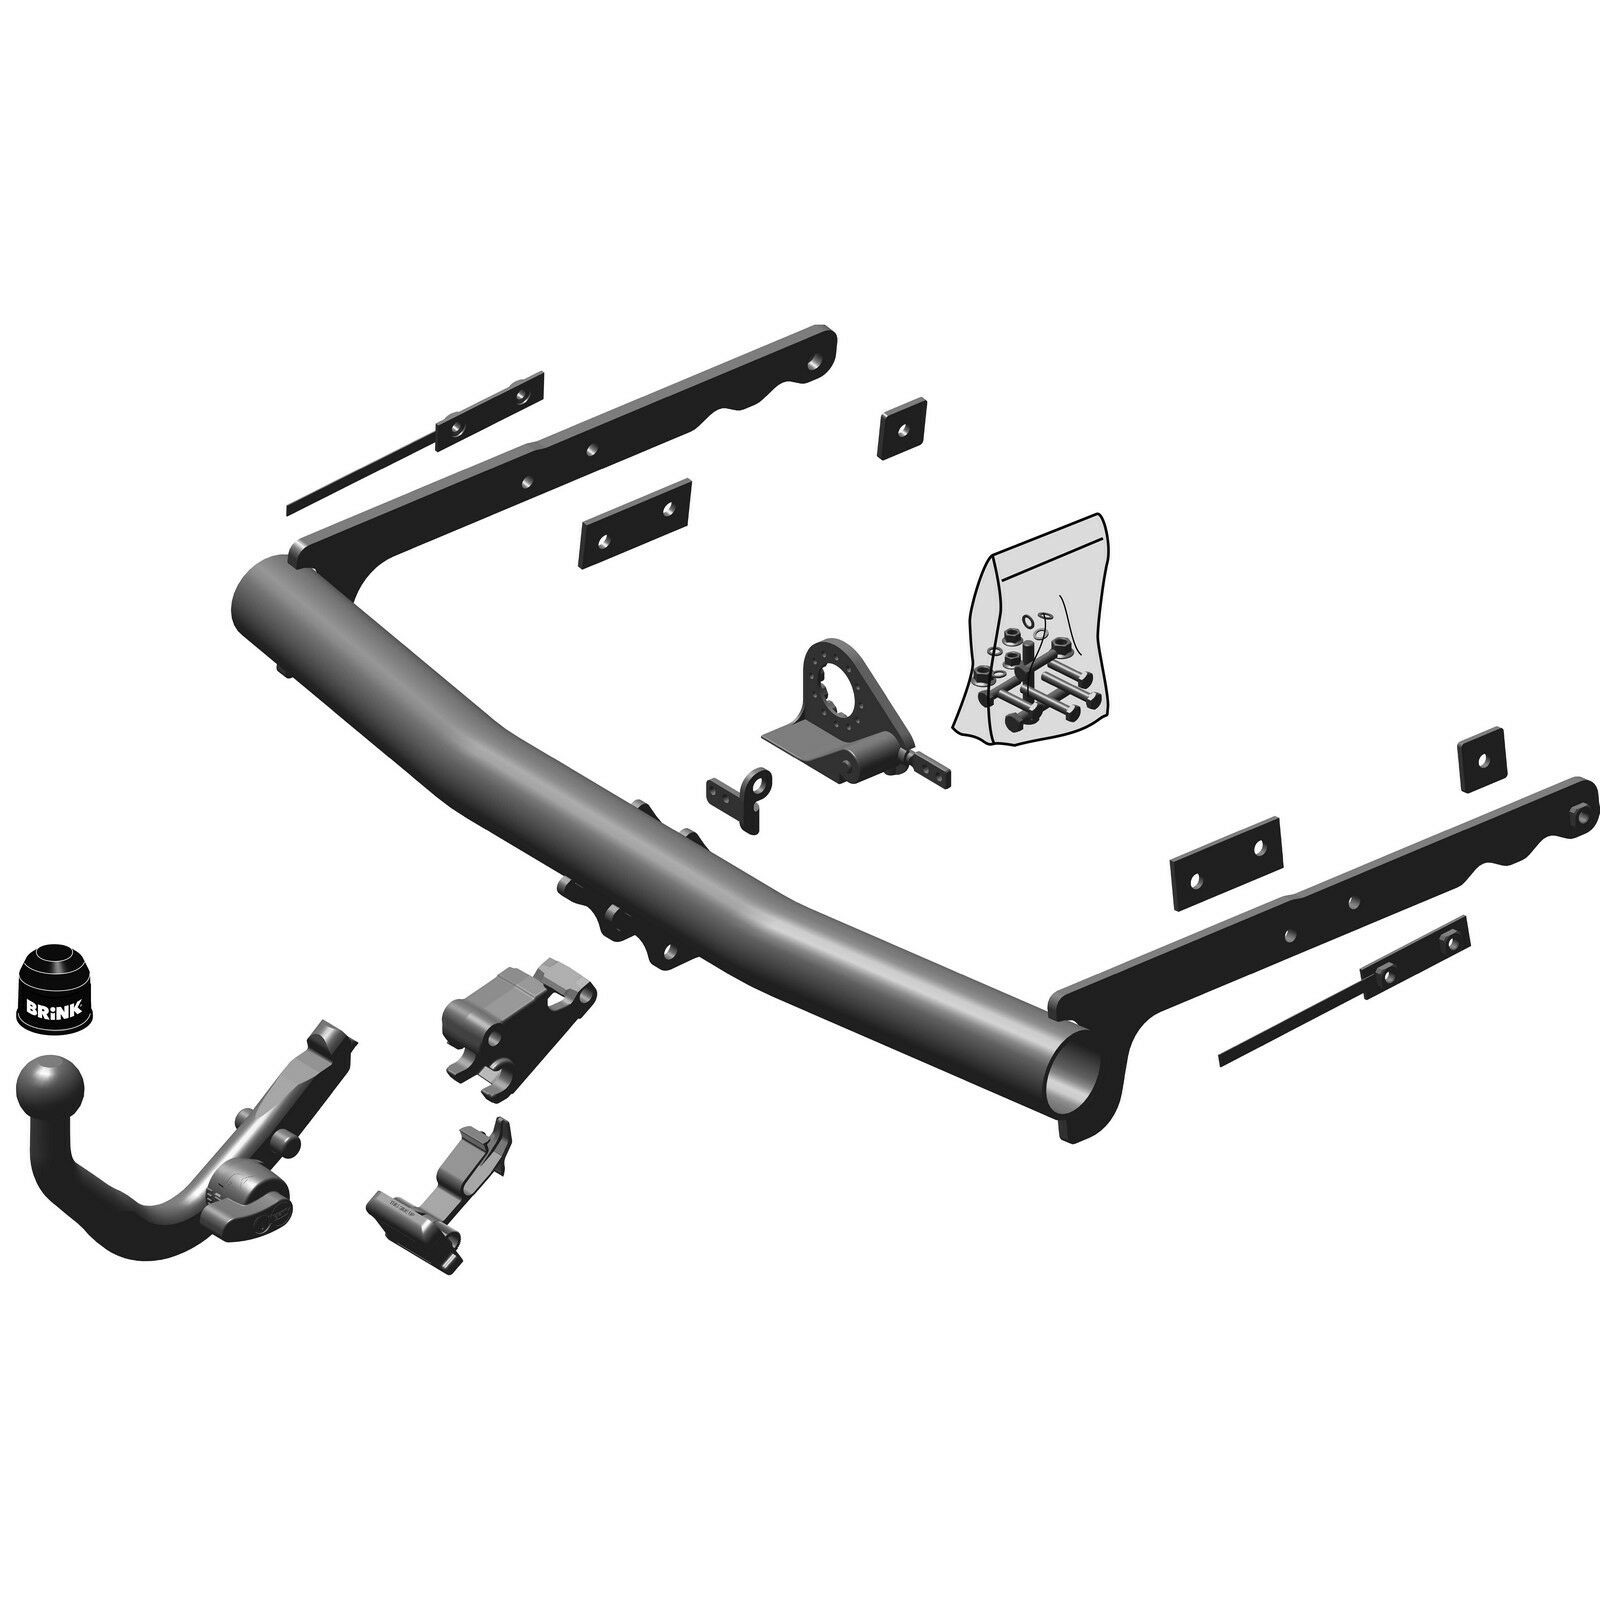 Brink Towbar for Ford Mondeo Hatchback 2007-2015 Detachable Tow Bar